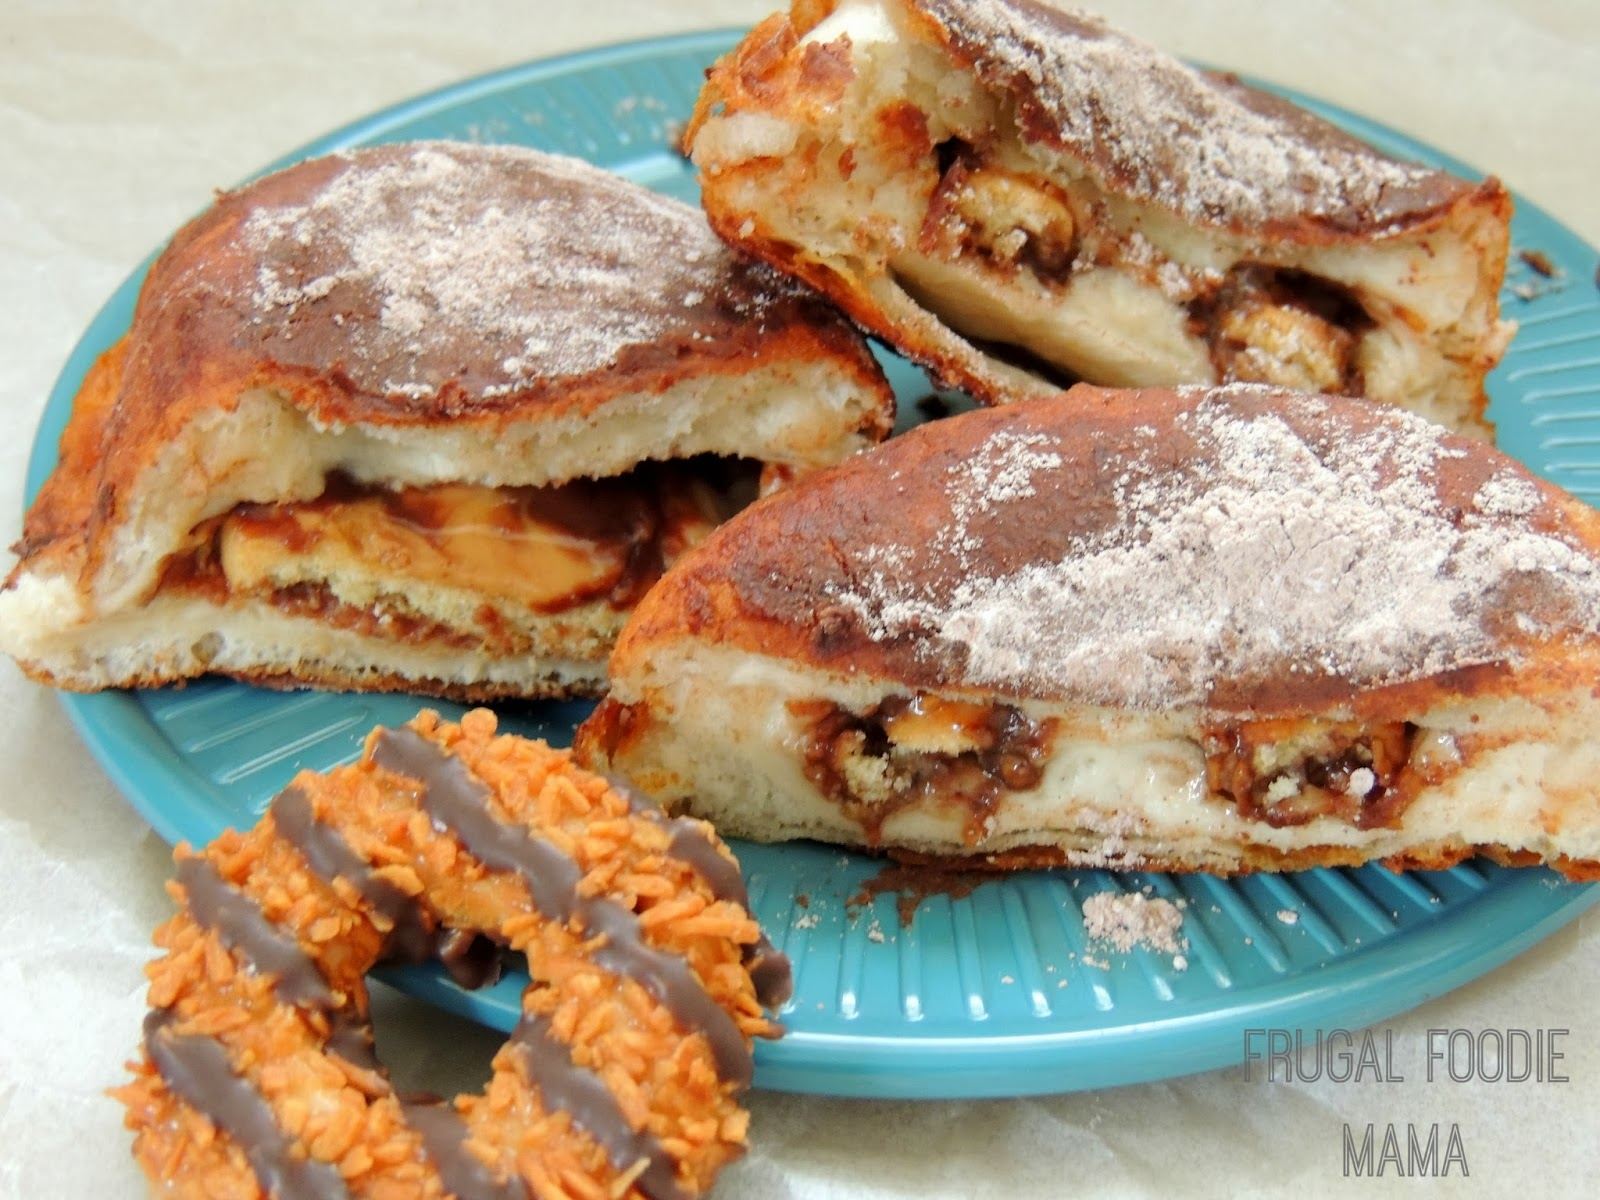 You only need 5 ingredients & just 20 minutes to make these decadent & easy to make Girl Scout Cookie Stuffed Donuts.